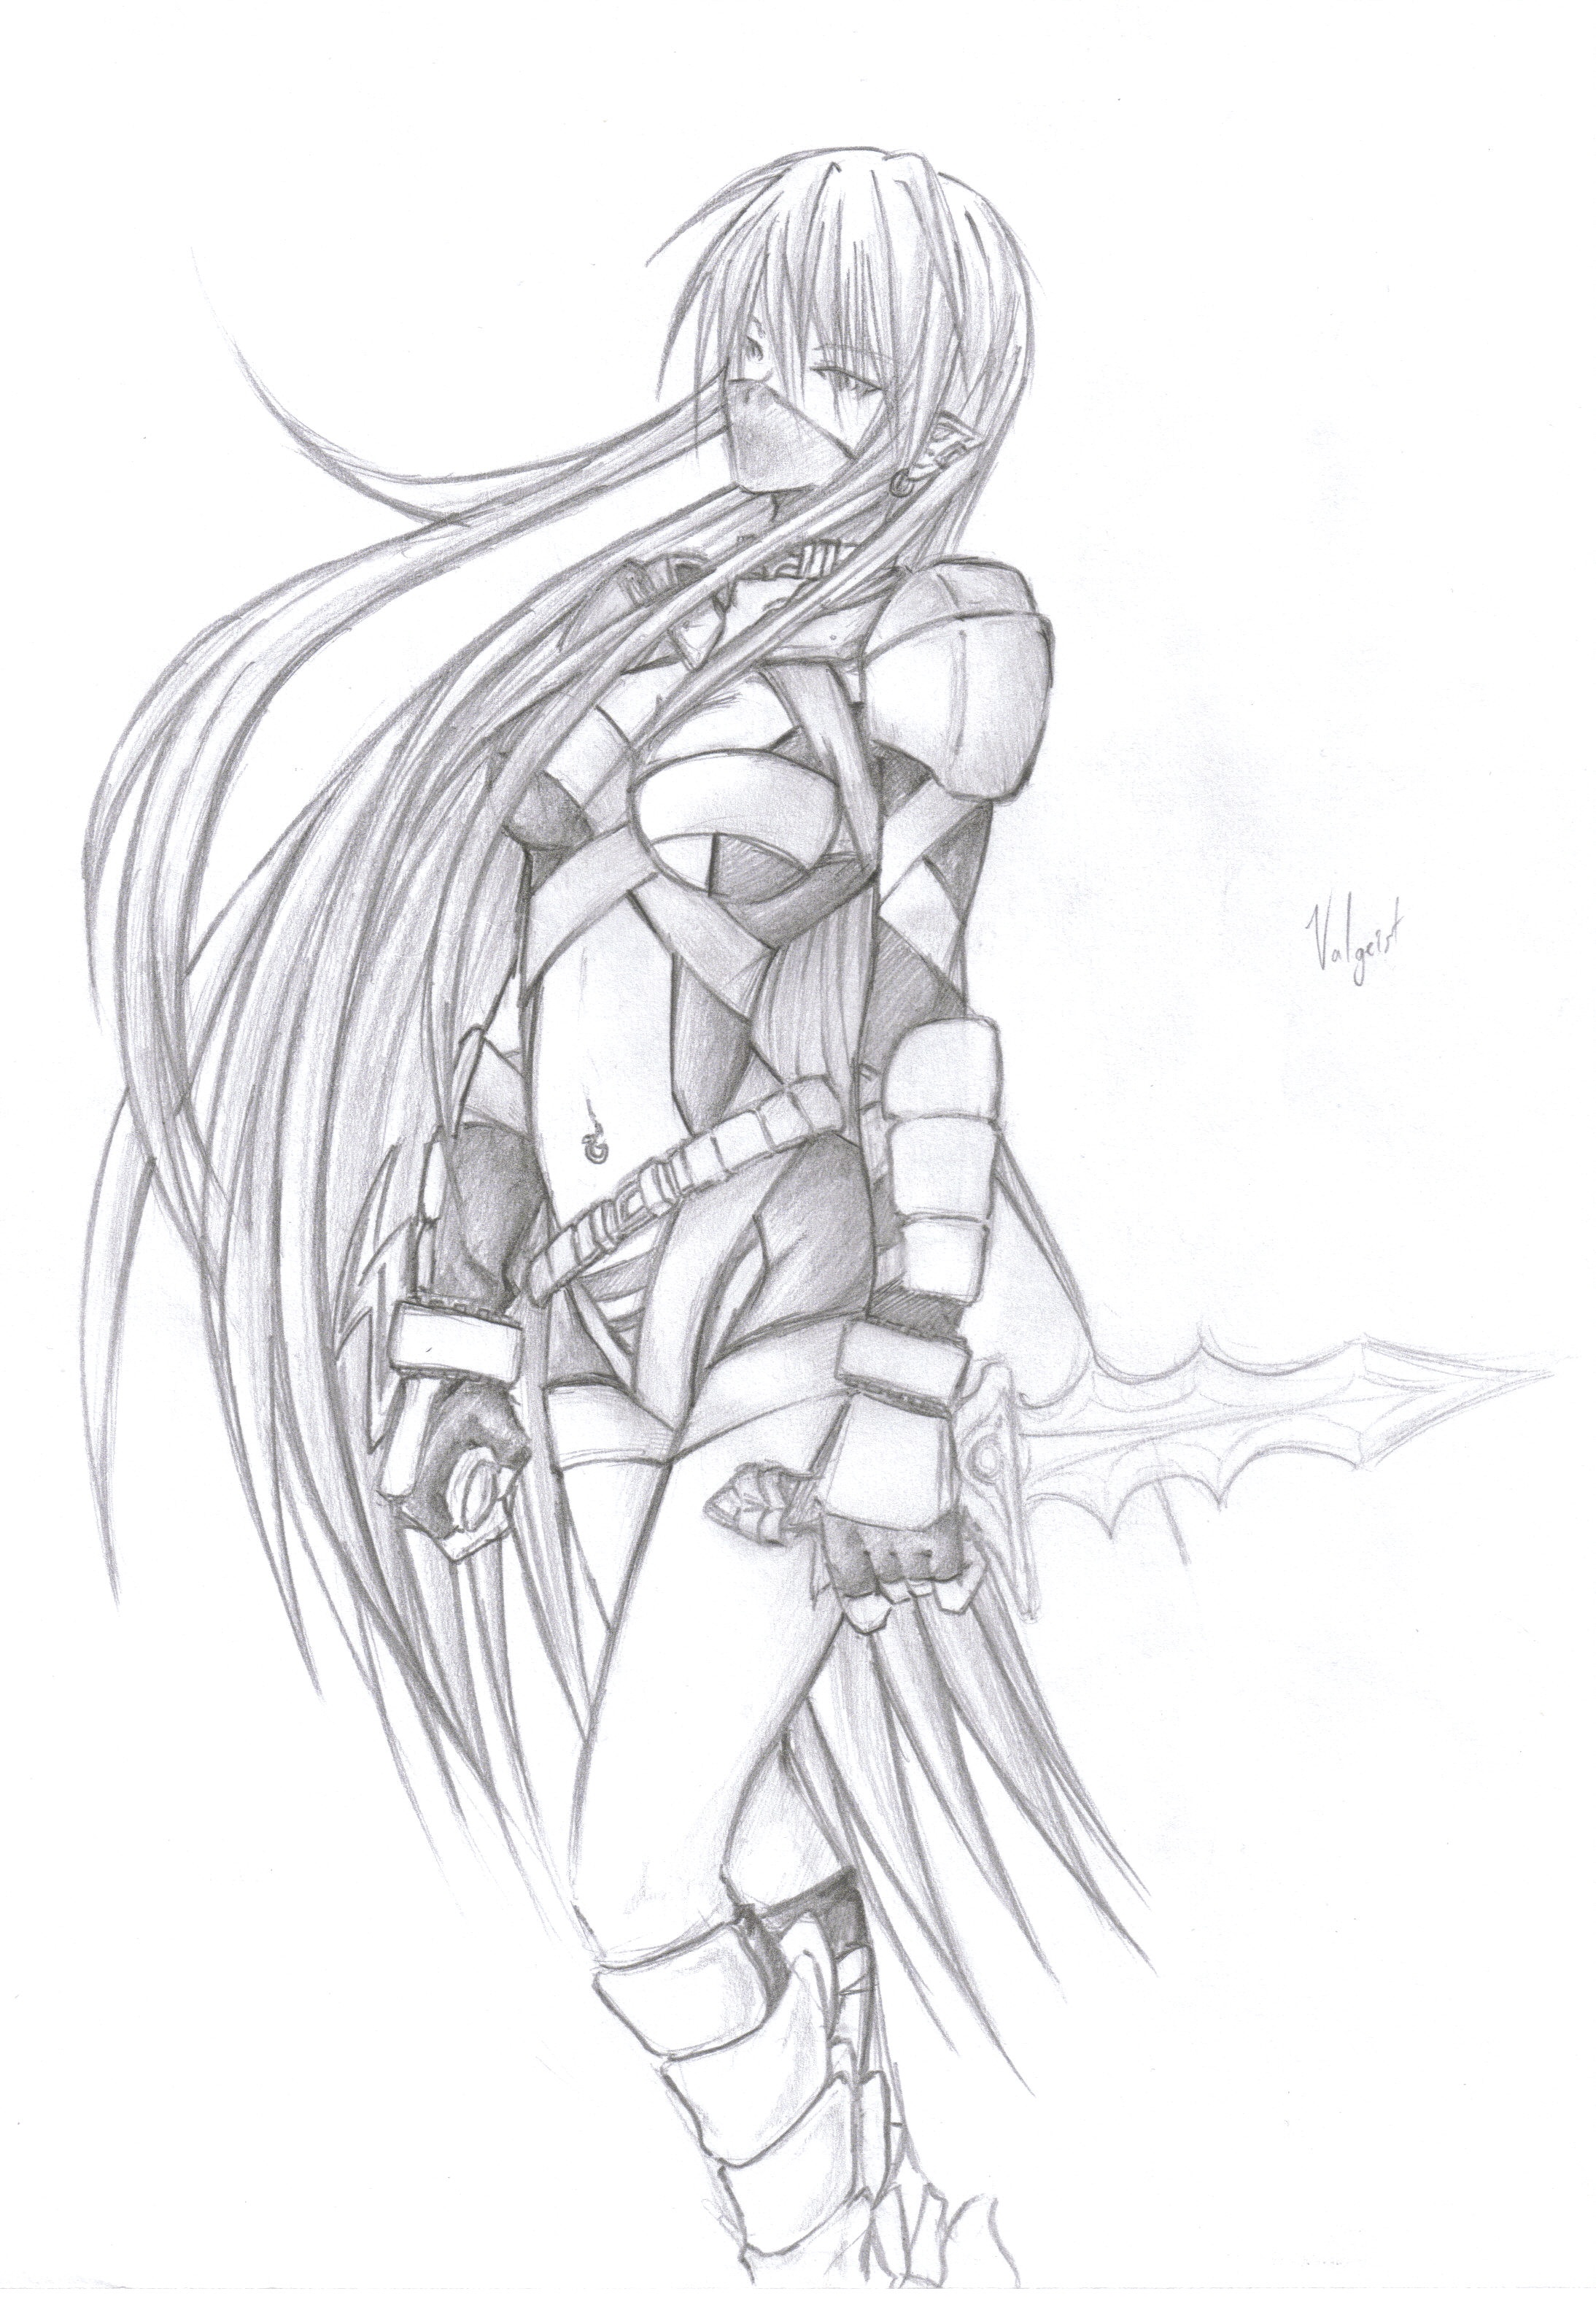 Valgeist Feamle Assassin By Colleenchow On Deviantart